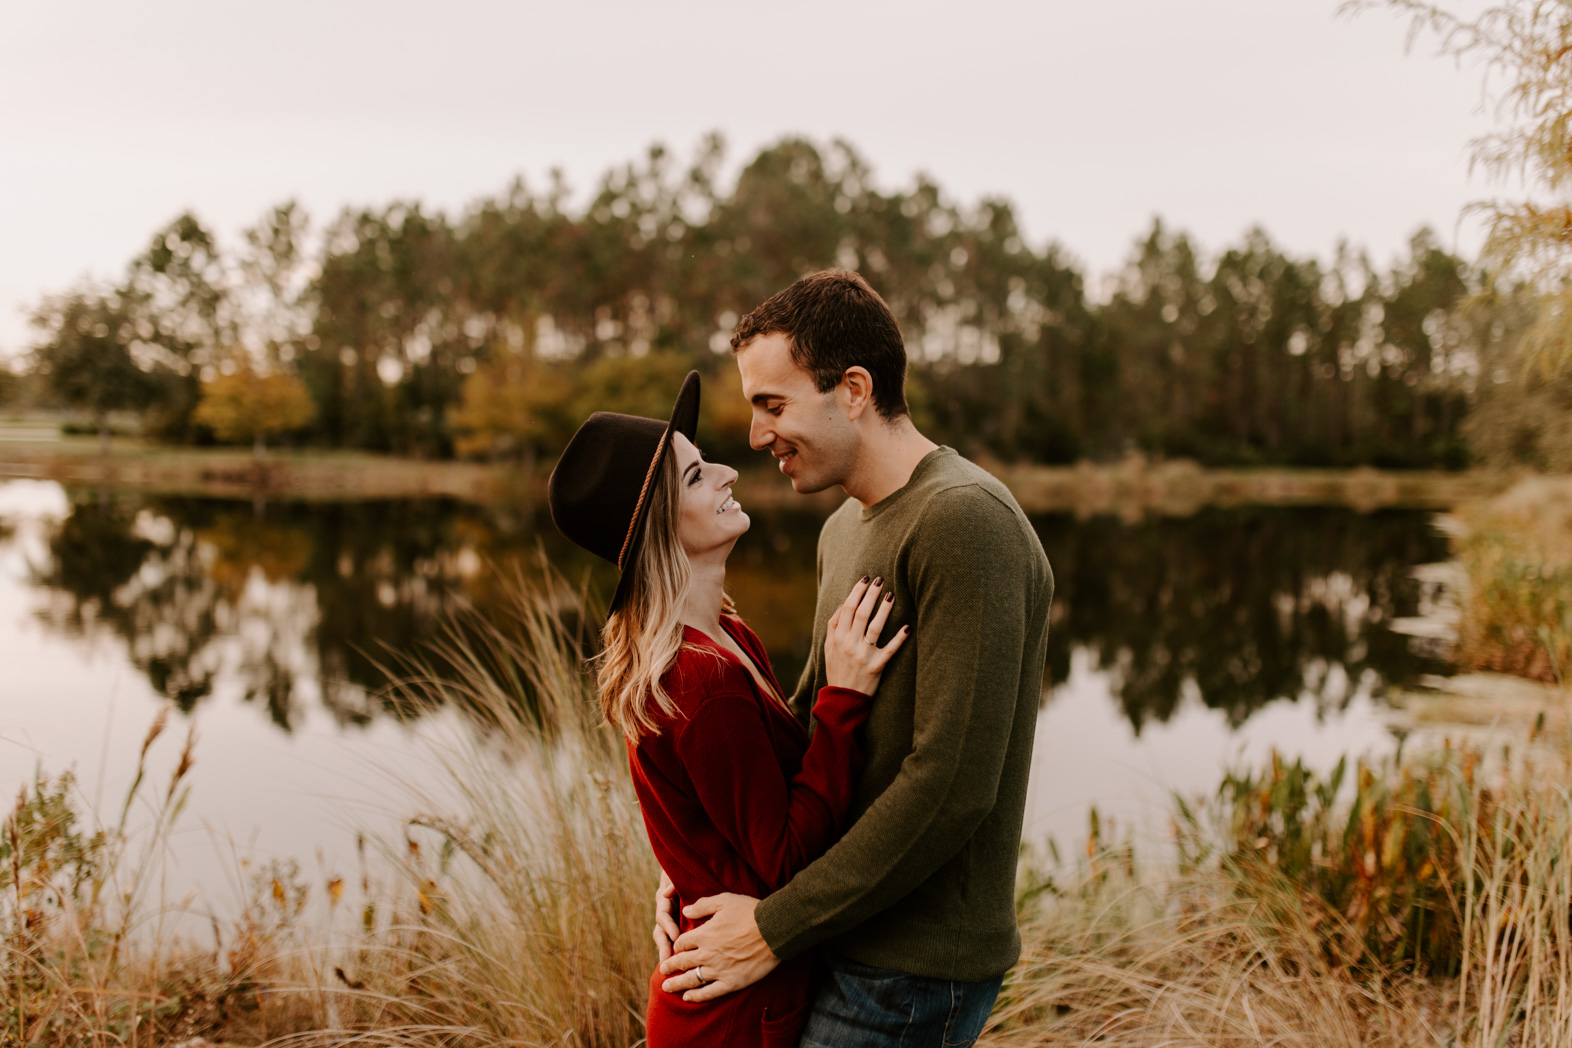 fall-field-couple-session-palm-coast-photographer-1-6.jpg